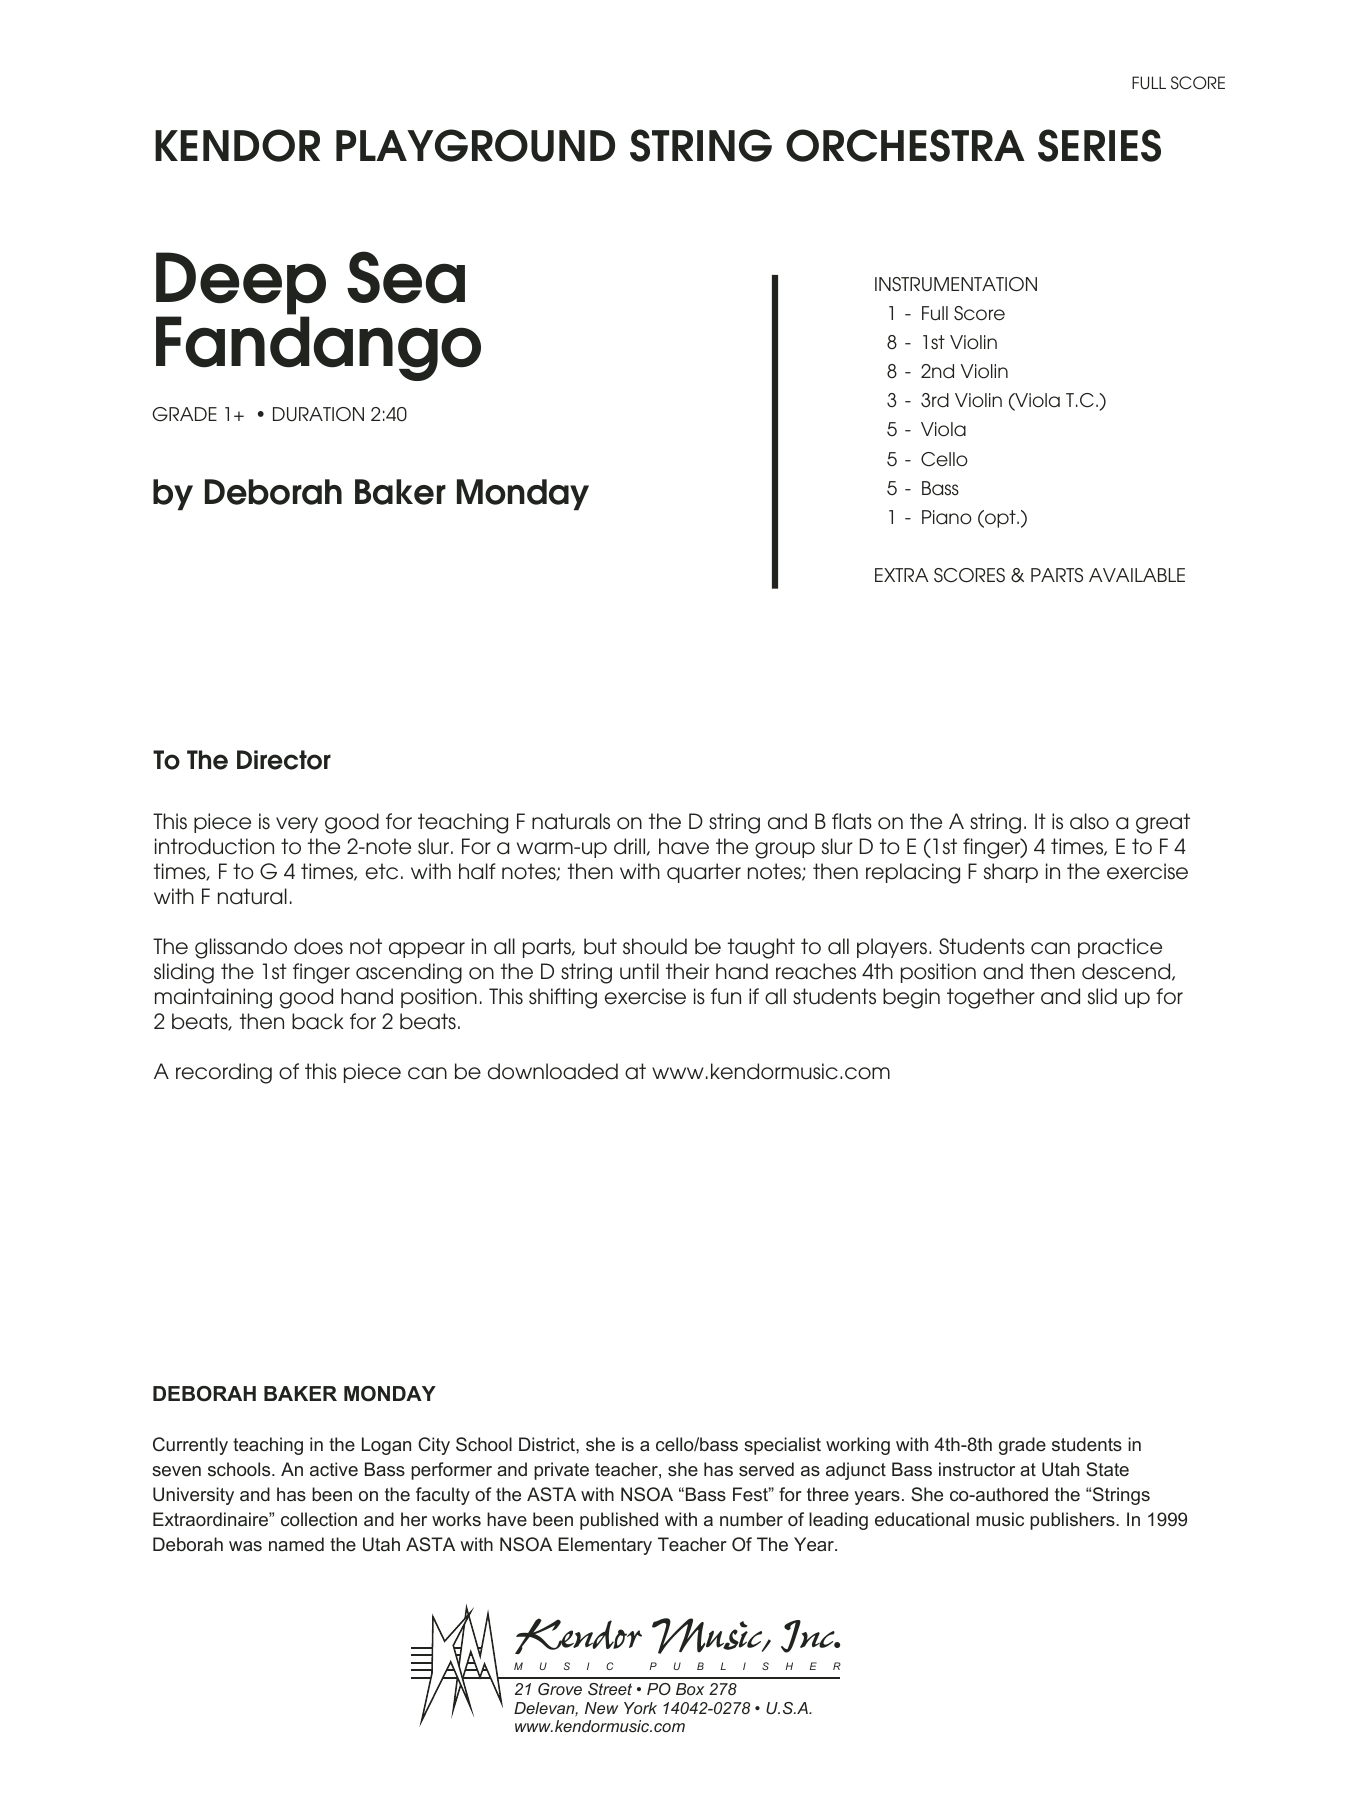 Deep Sea Fandango (COMPLETE) sheet music for orchestra by Deborah Baker Monday. Score Image Preview.